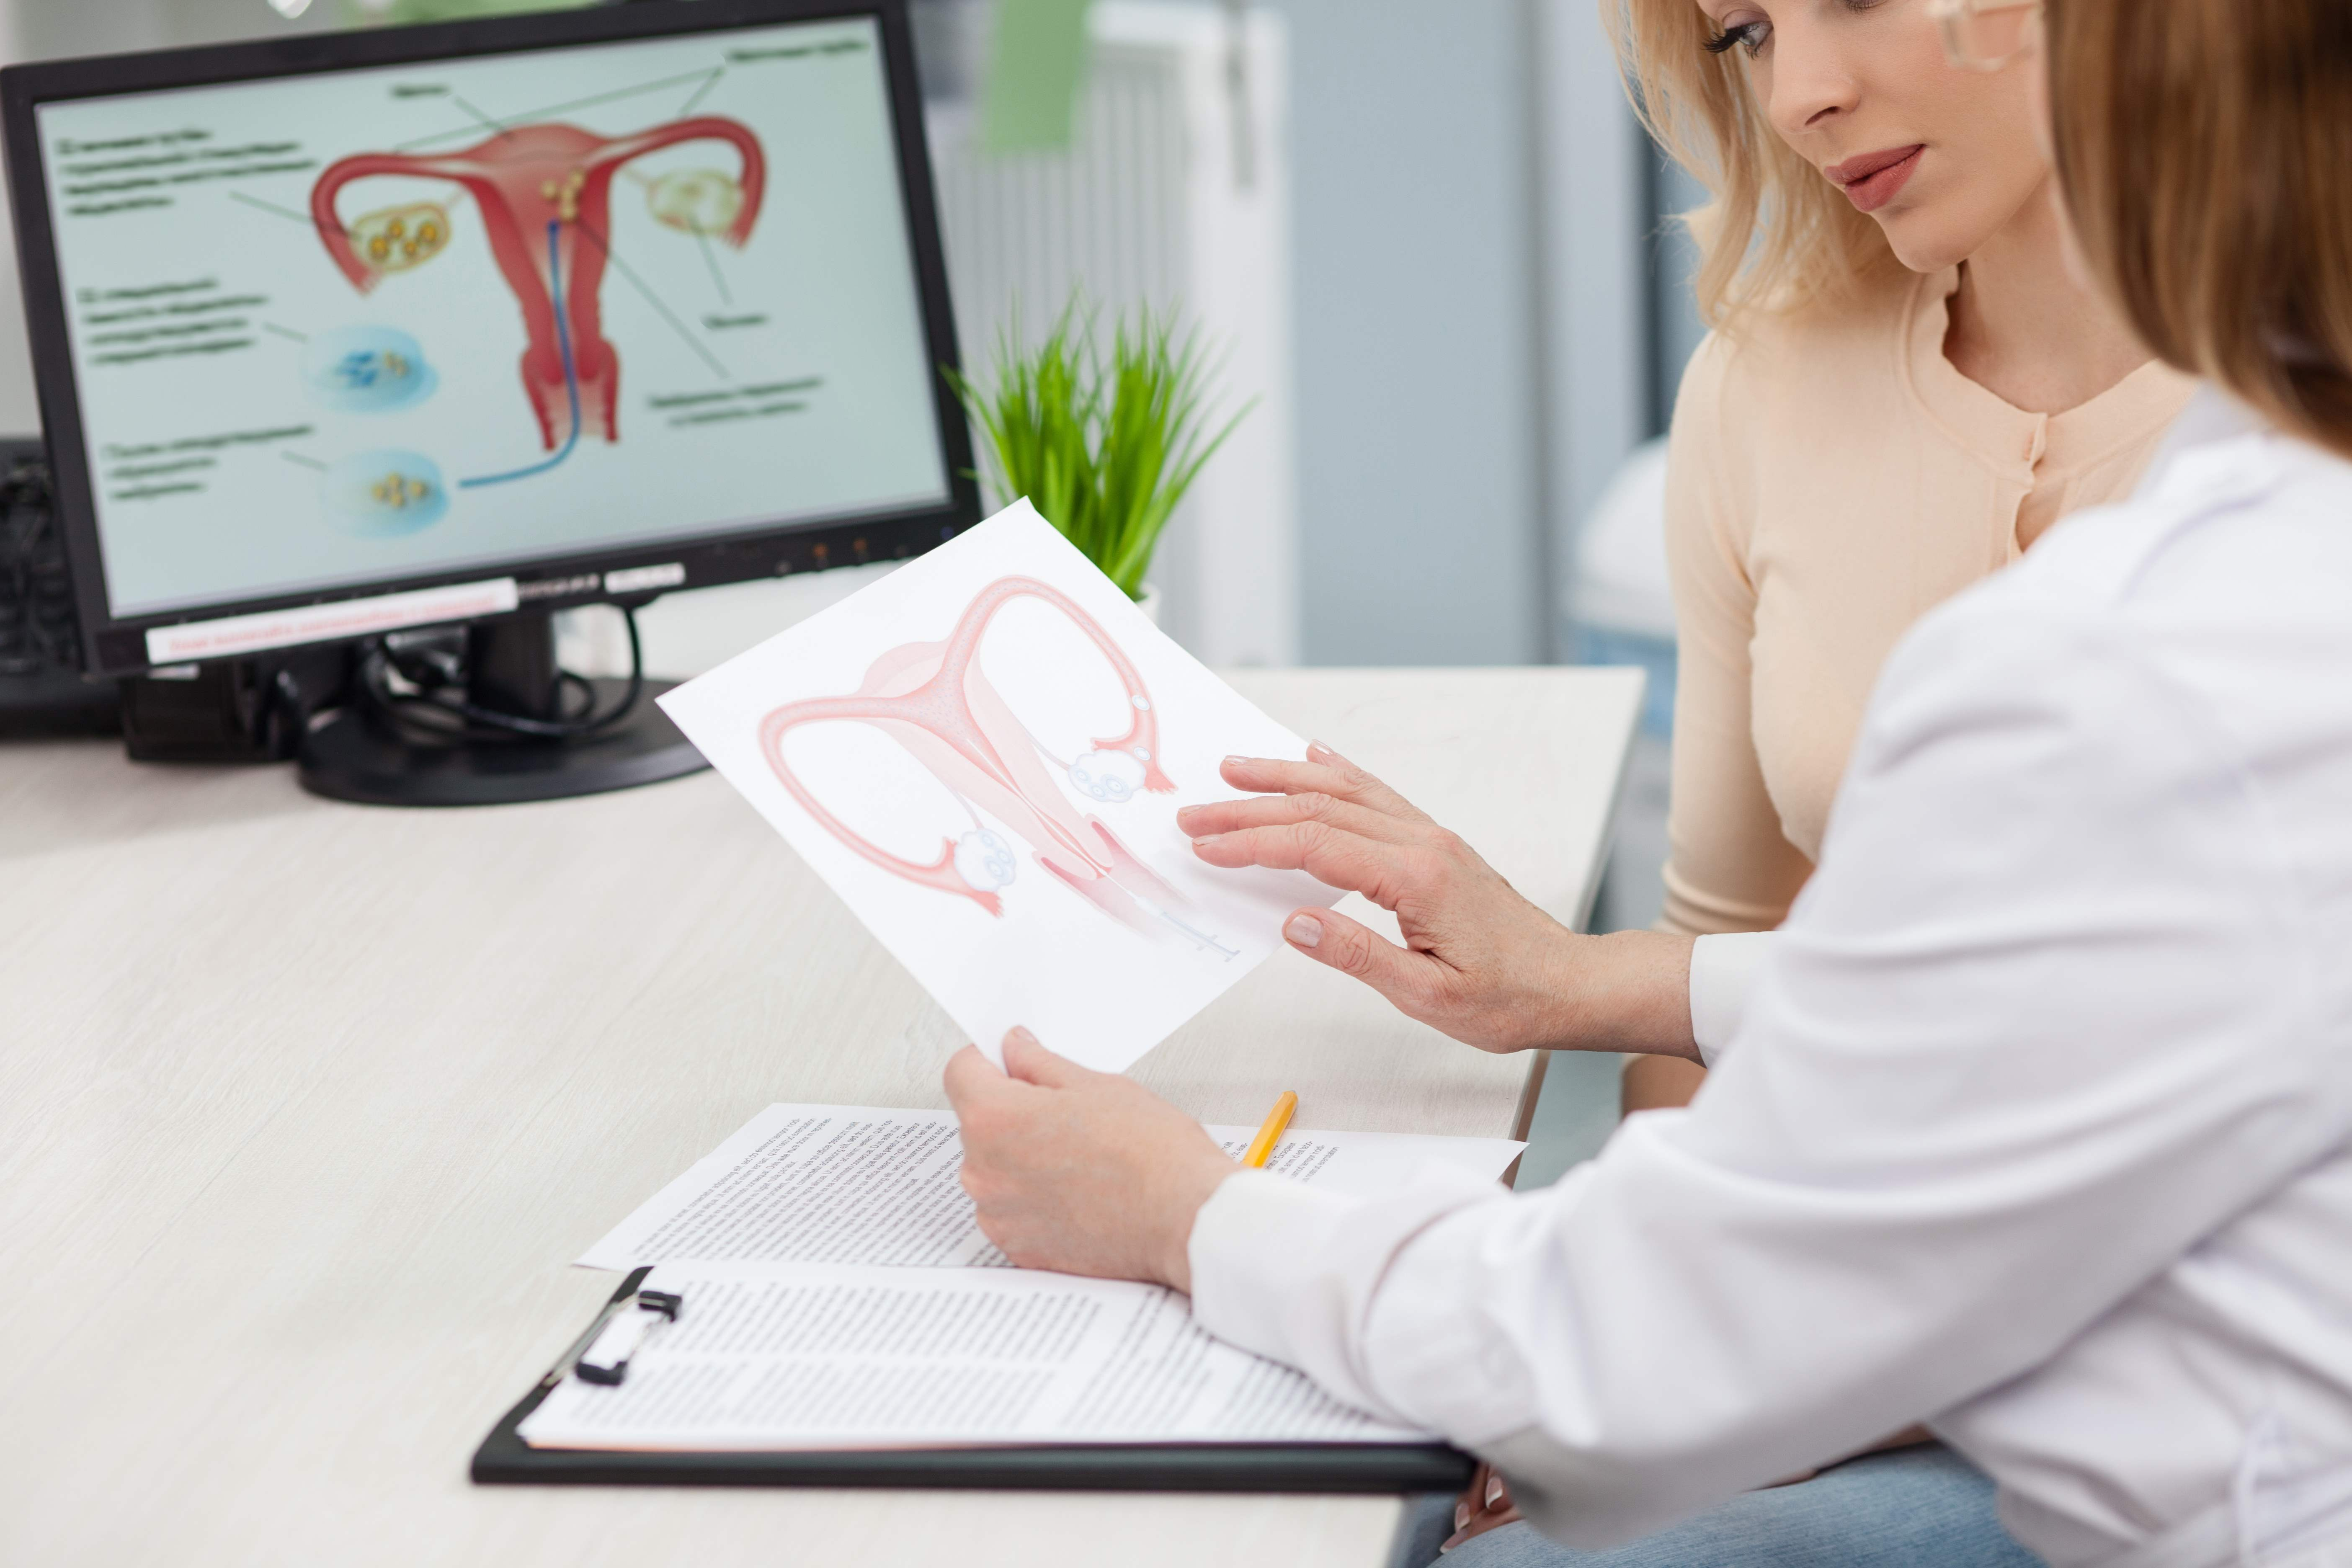 Can I have IVF if my fallopian tubes are blocked?